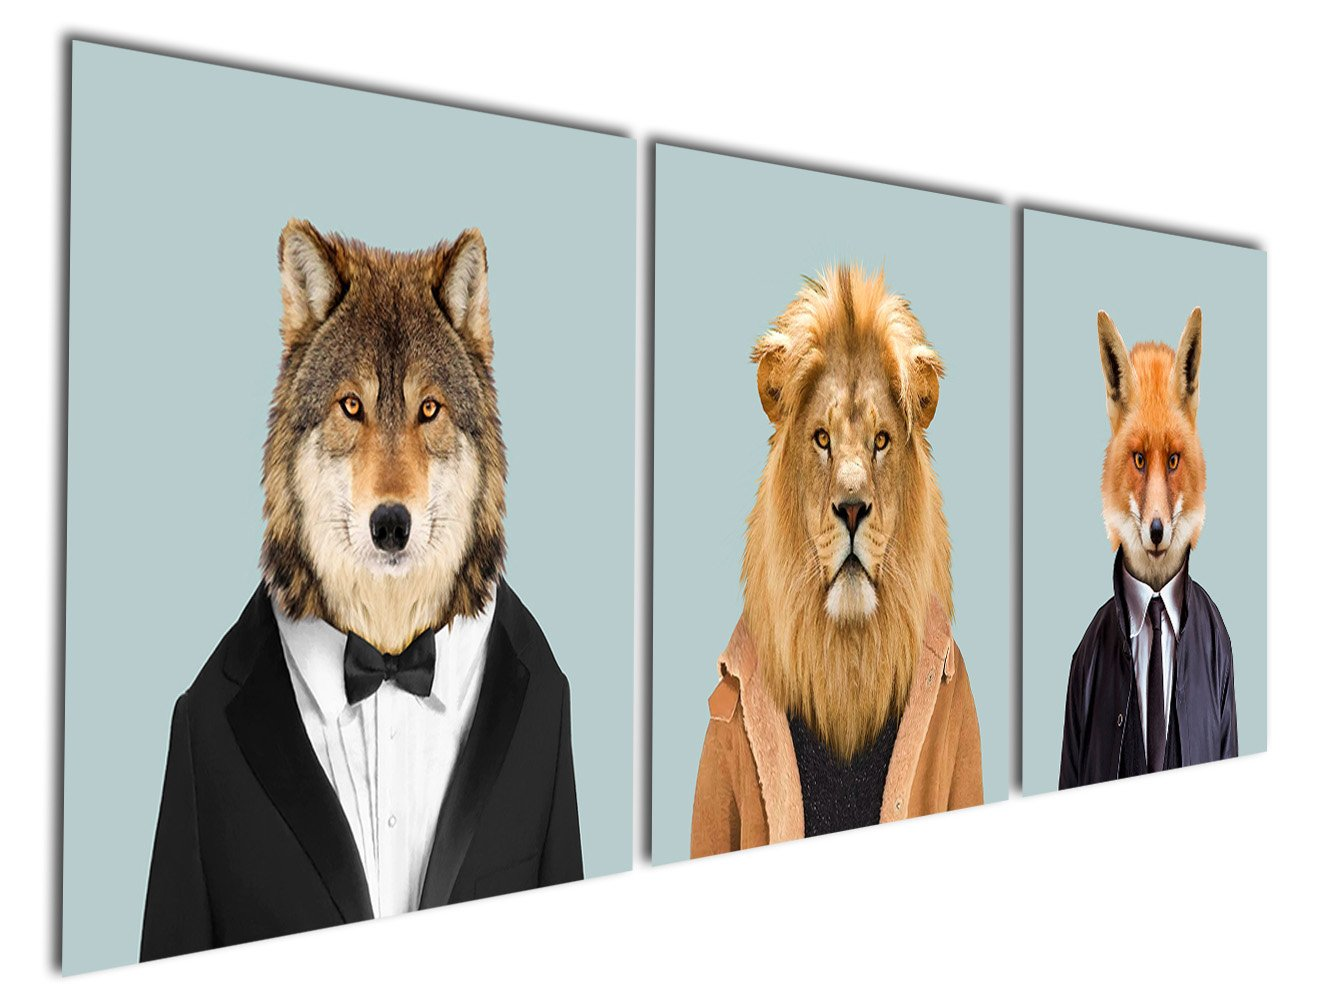 Gardenia Art Animal World Series 3 Lion Wolf and Fox Canvas Prints Modern Wall Art Paintings Puppy Wild animal Artwork for Room Decoration,16x16 inch, Stretched and Framed